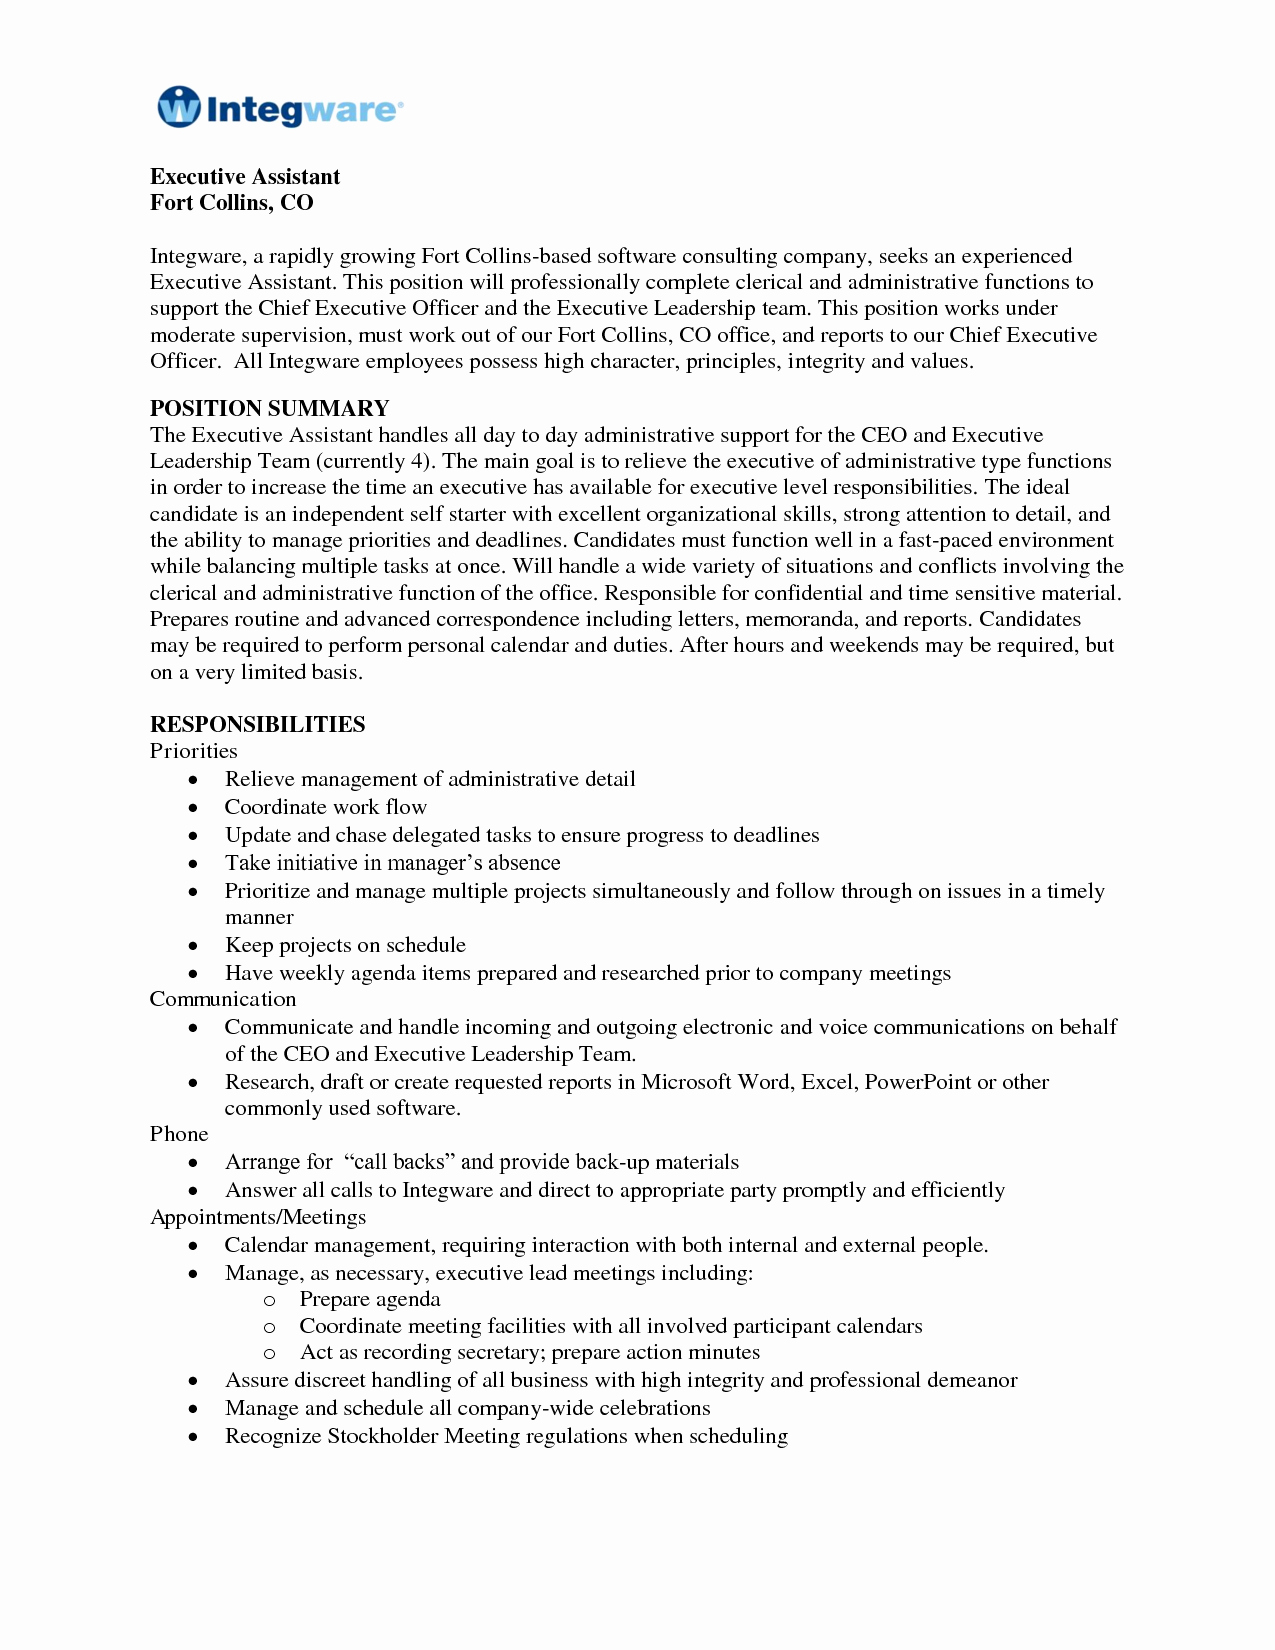 Summary Resume Examples Administrative assistant